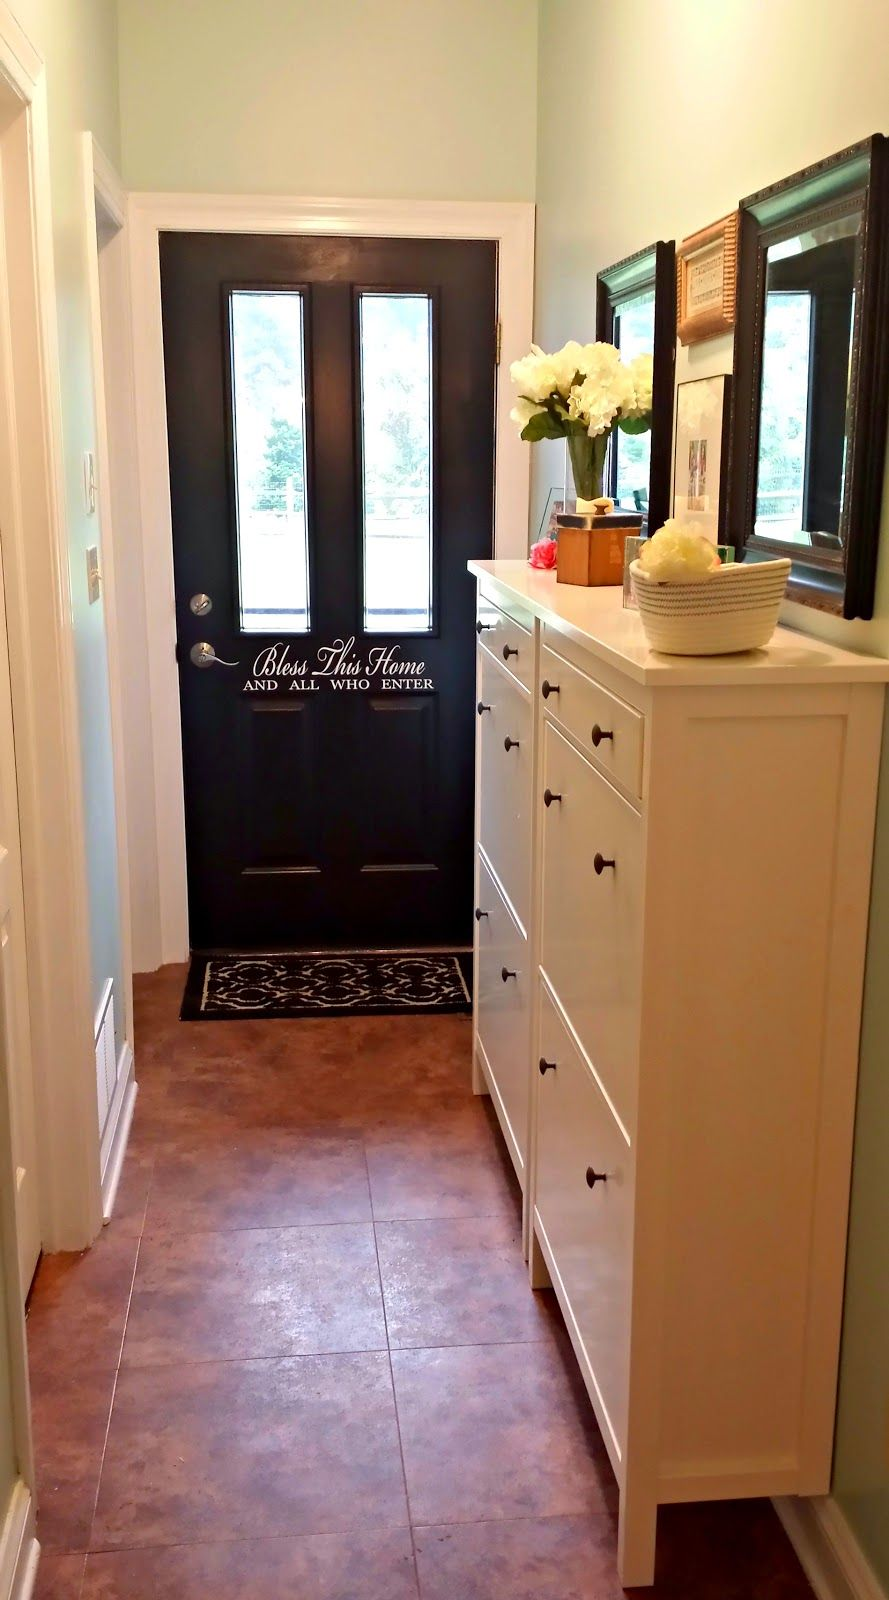 raising may flowers house tour back entrance ikea shoe cabinets